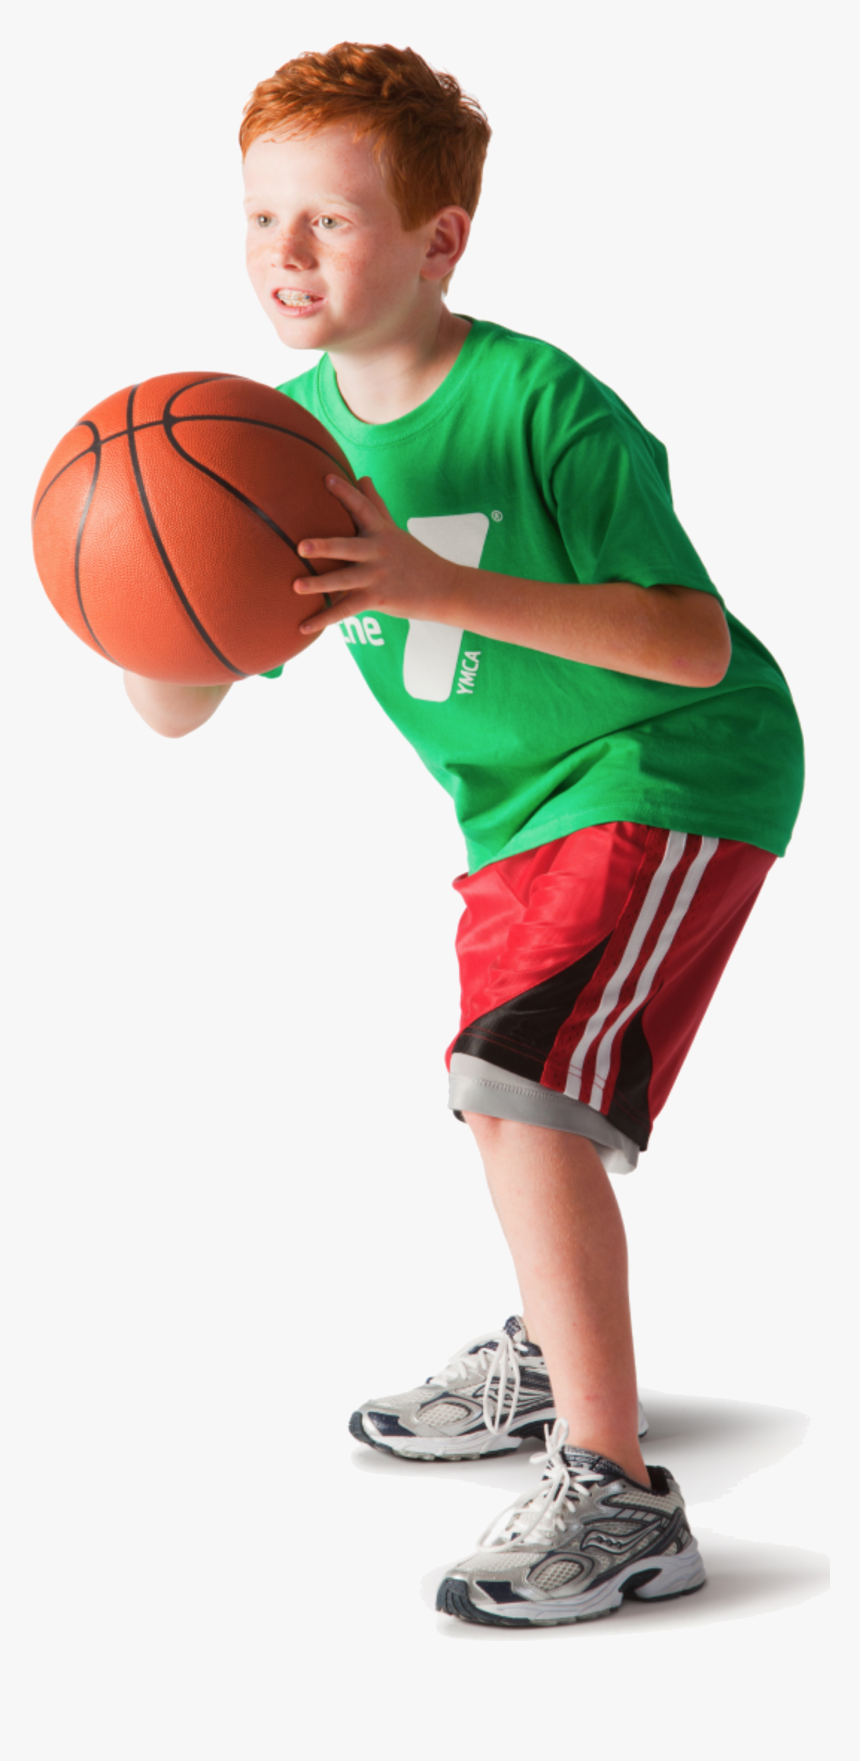 Basketball - Ymca Basketball Clinic Partnering With Sacramento State, HD Png Download, Free Download